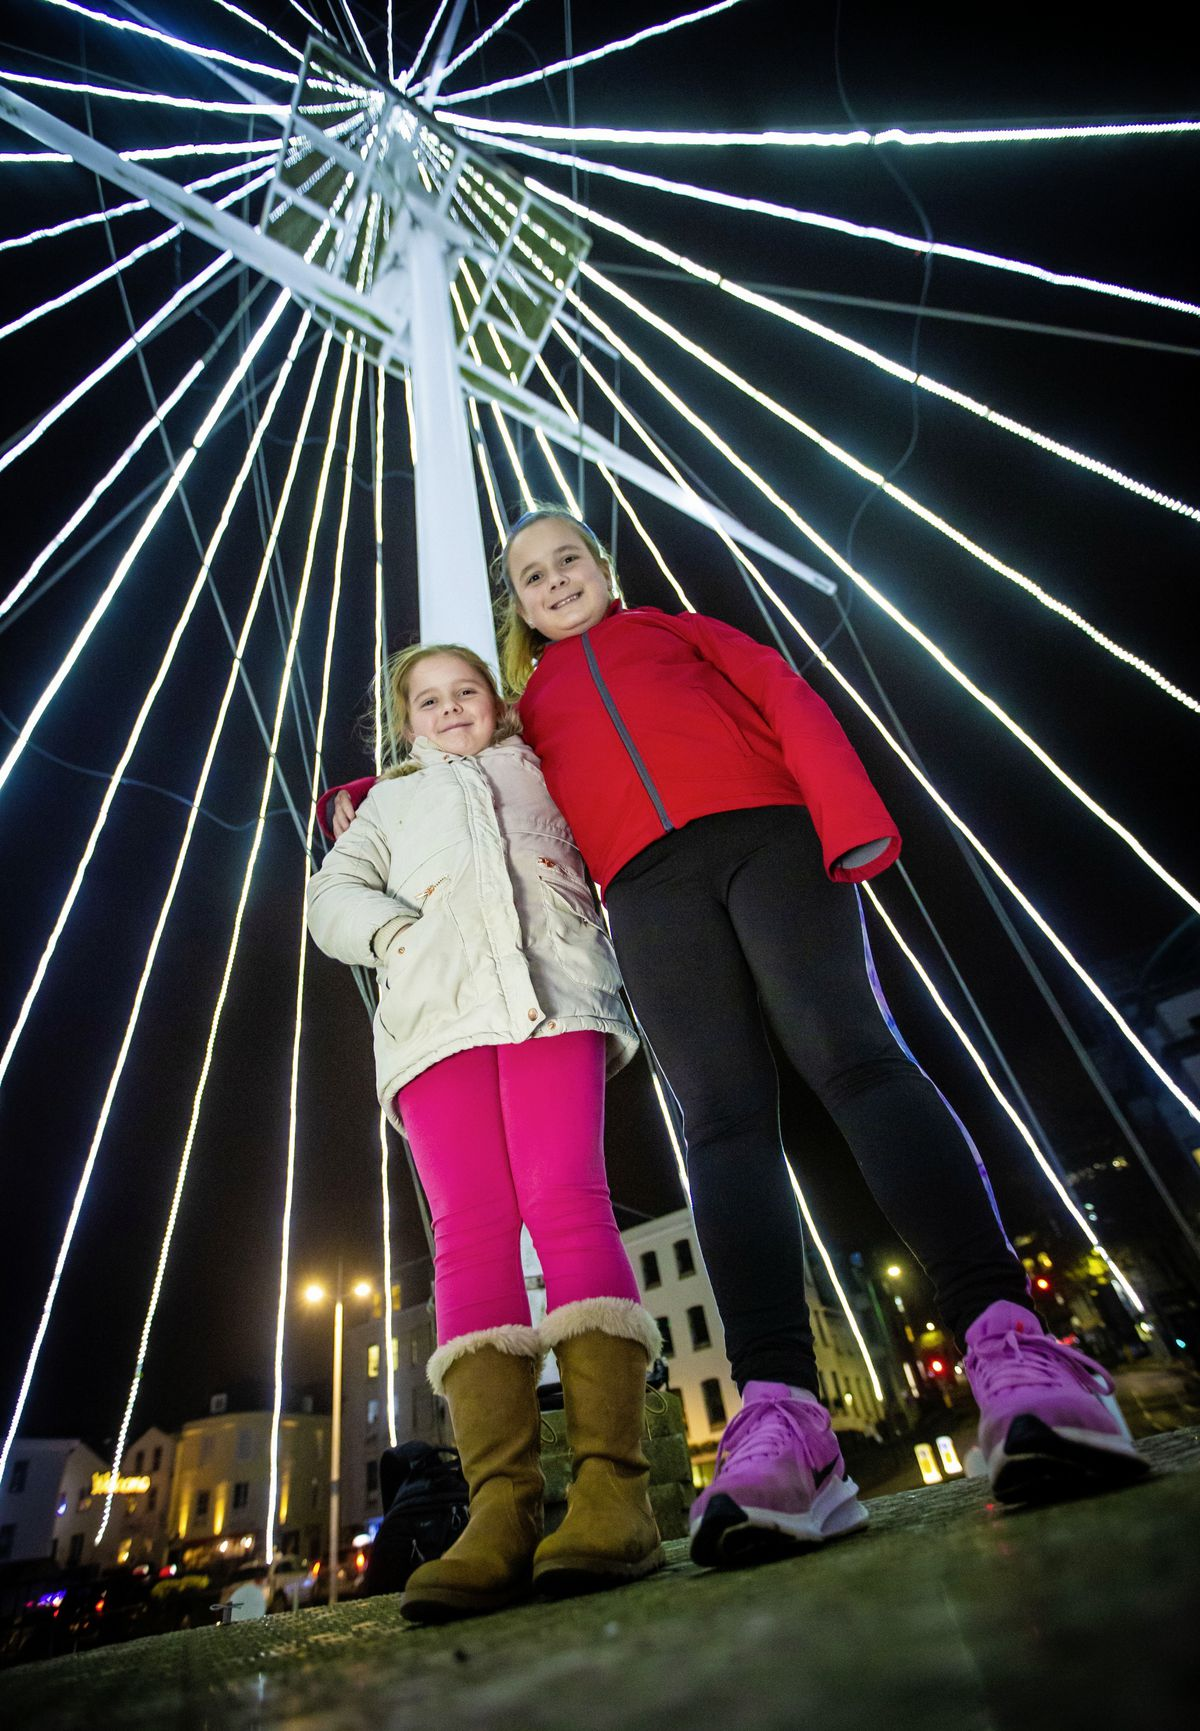 Sisters Emilie, 9 and Amie, 11, Miller, were picked to switch on the lights on the Tree of Joy. (Pictures by Peter Frankland, 28956521)